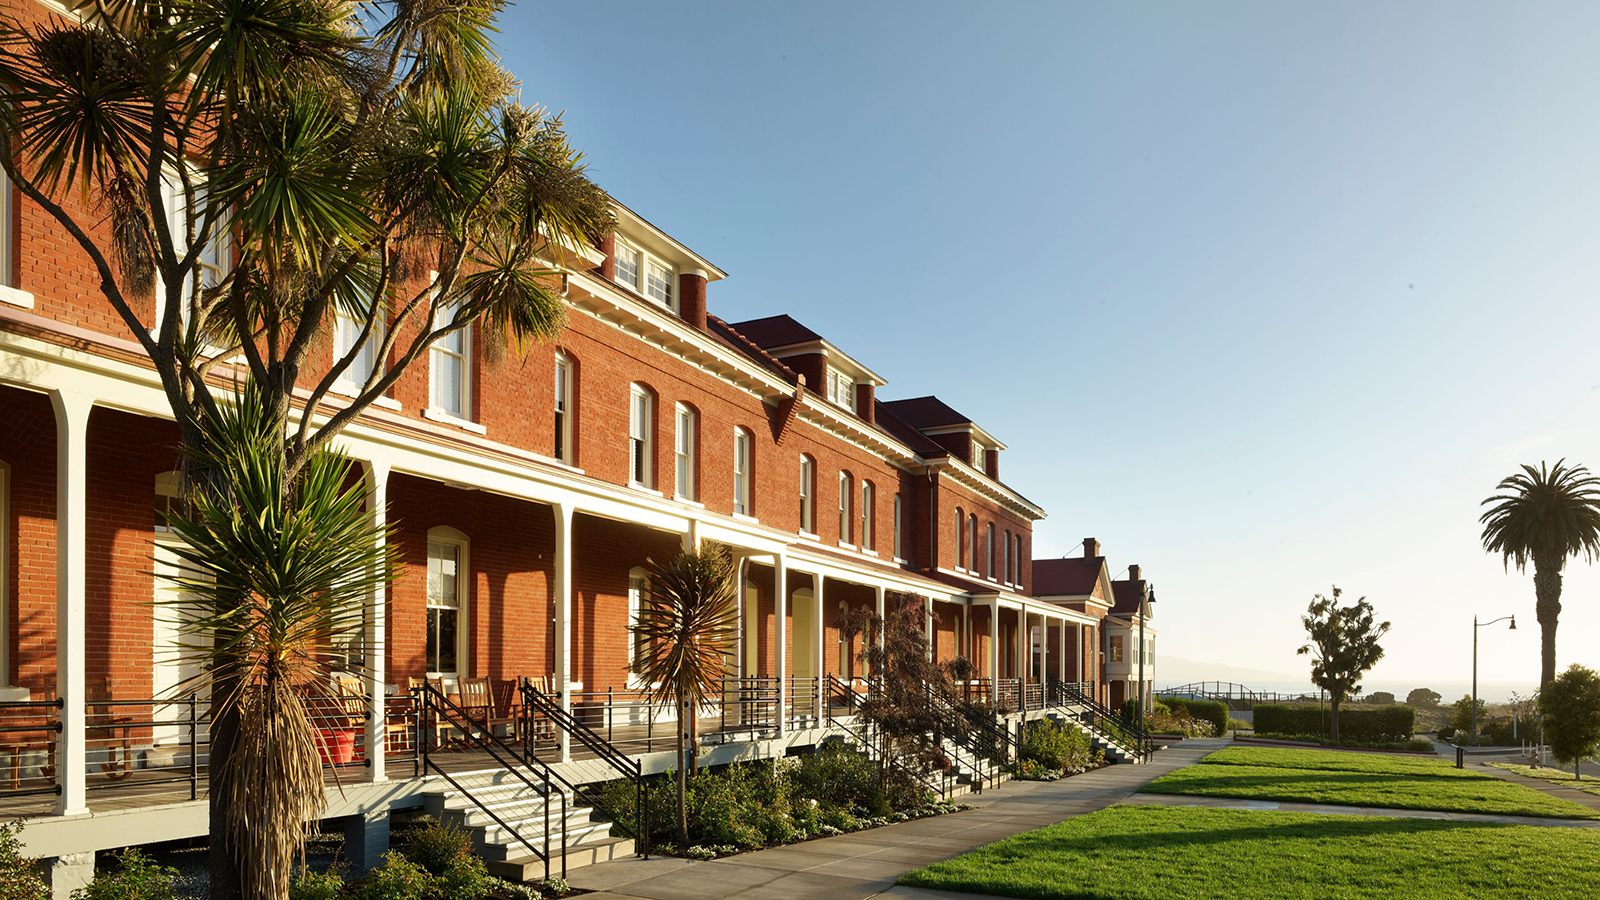 Image of Hotel Exterior The Lodge at the Presidio, 1894, Member of Historic Hotels of America, in San Francisco, California, Overview